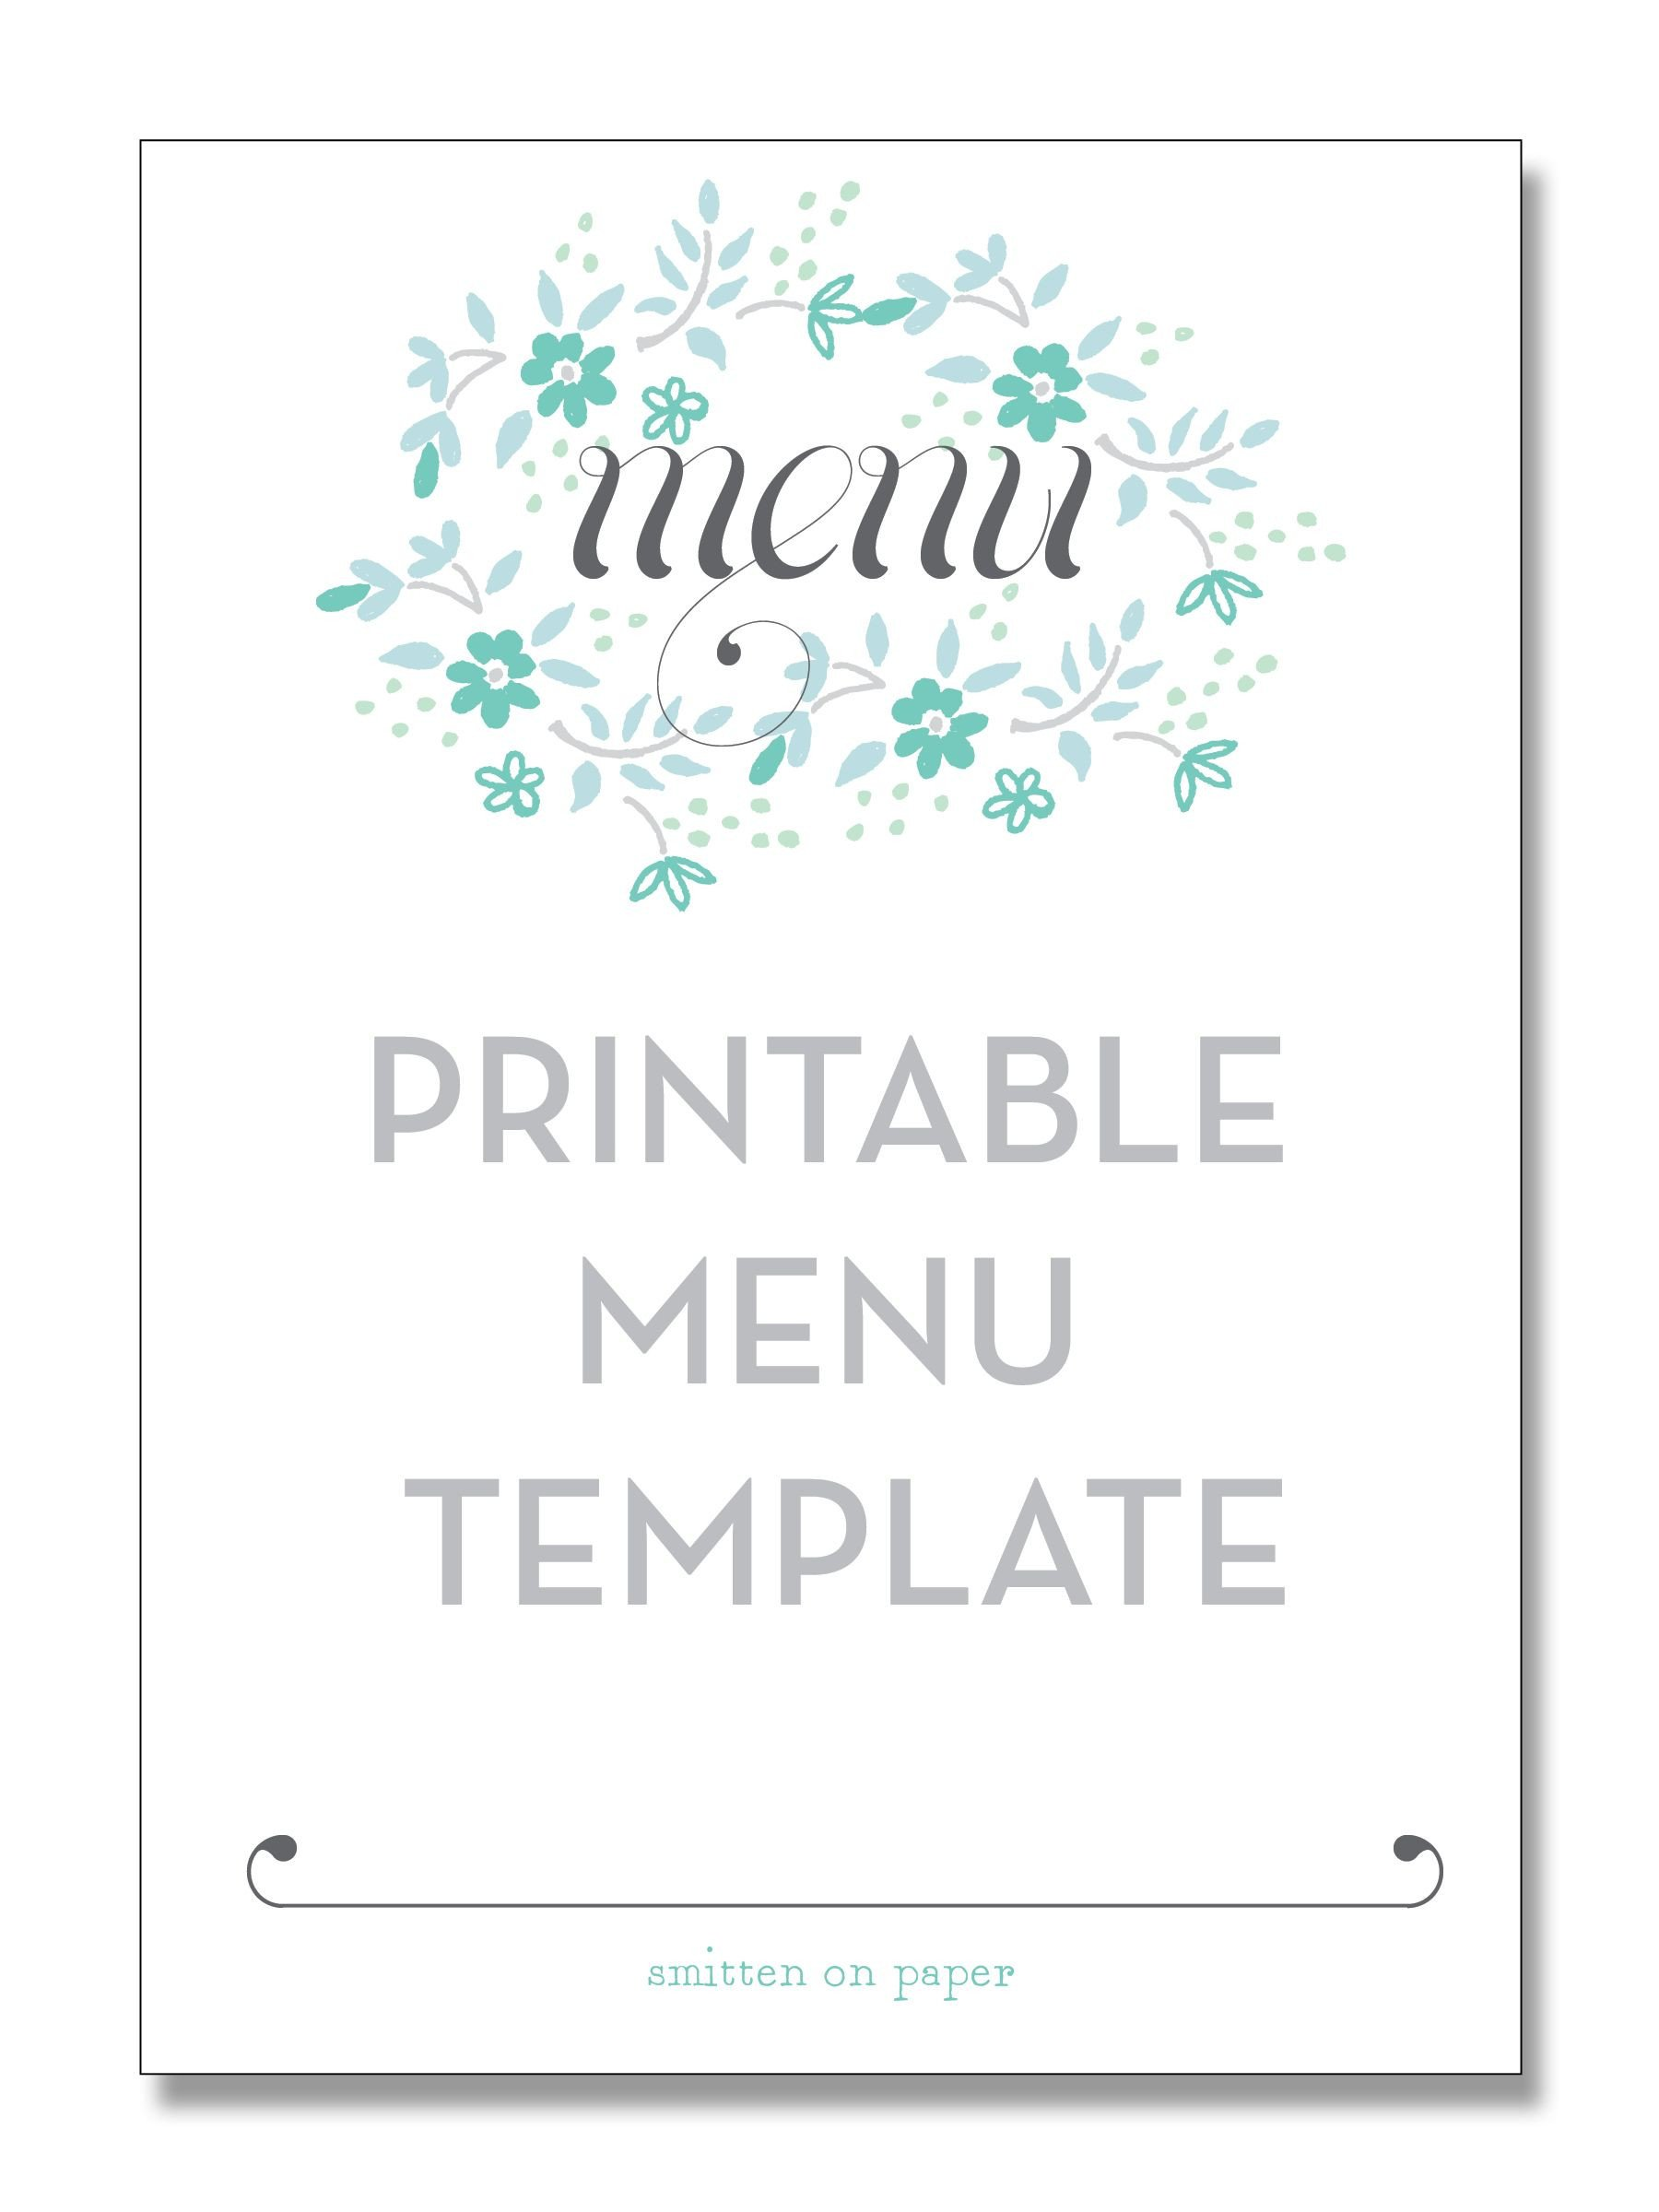 Free Menu Template for Word Printable Menu Template From Smitten On Paper